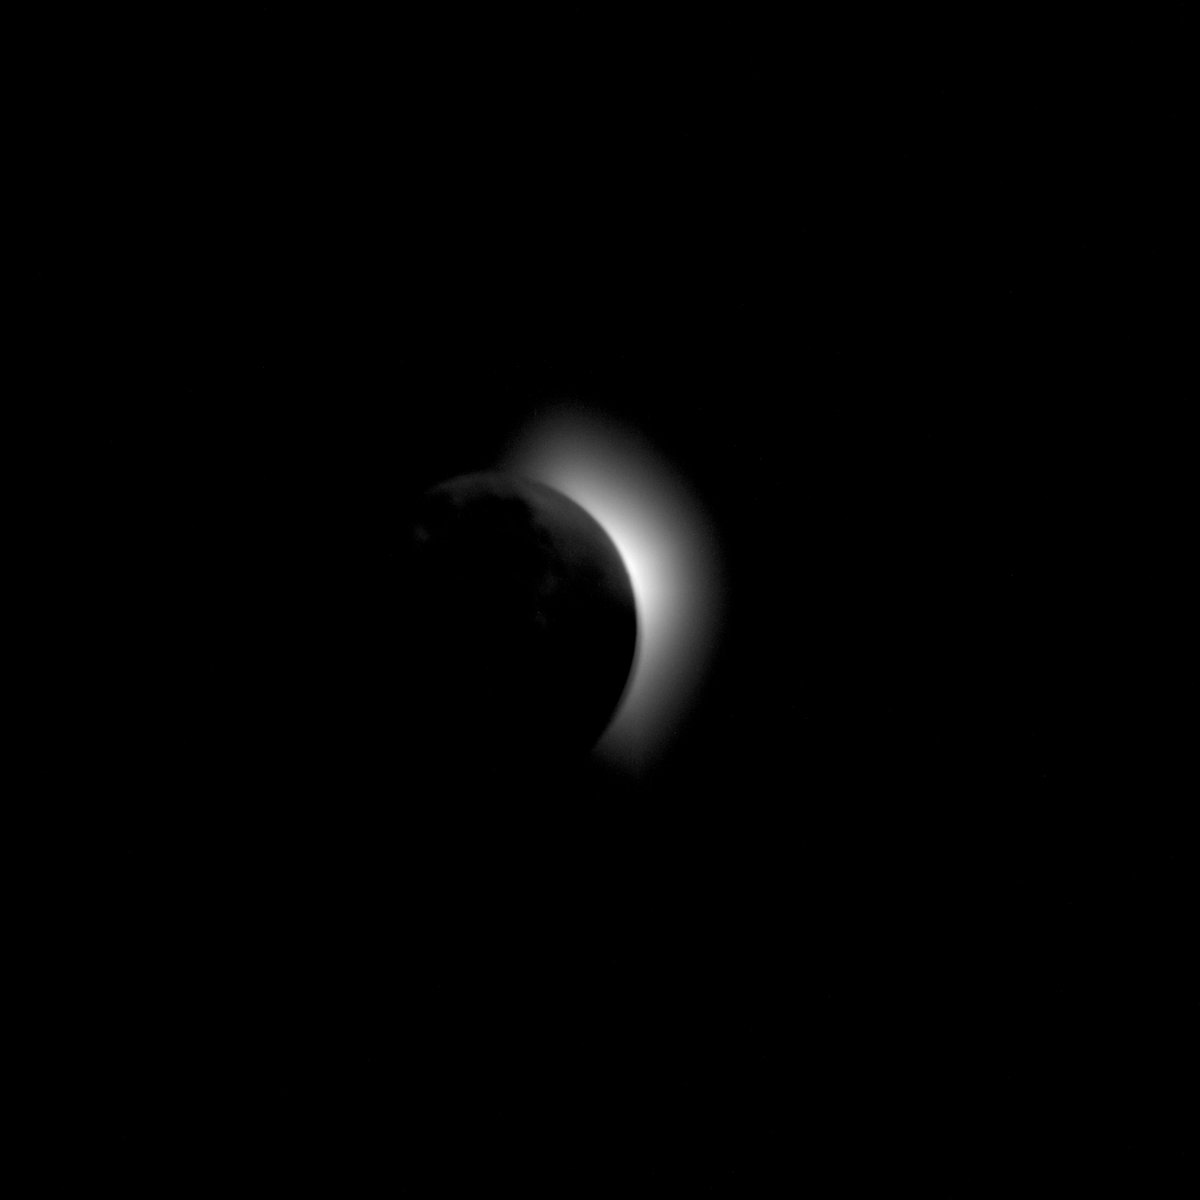 On the way to the Moon this happen. A solar corona was captured from the Apollo 11 spacecraft during trans-lunar coast and prior to lunar orbit insertion. The moon is the dark disc between the spacecraft and the sun. https://t.co/ALQGYfNfcY